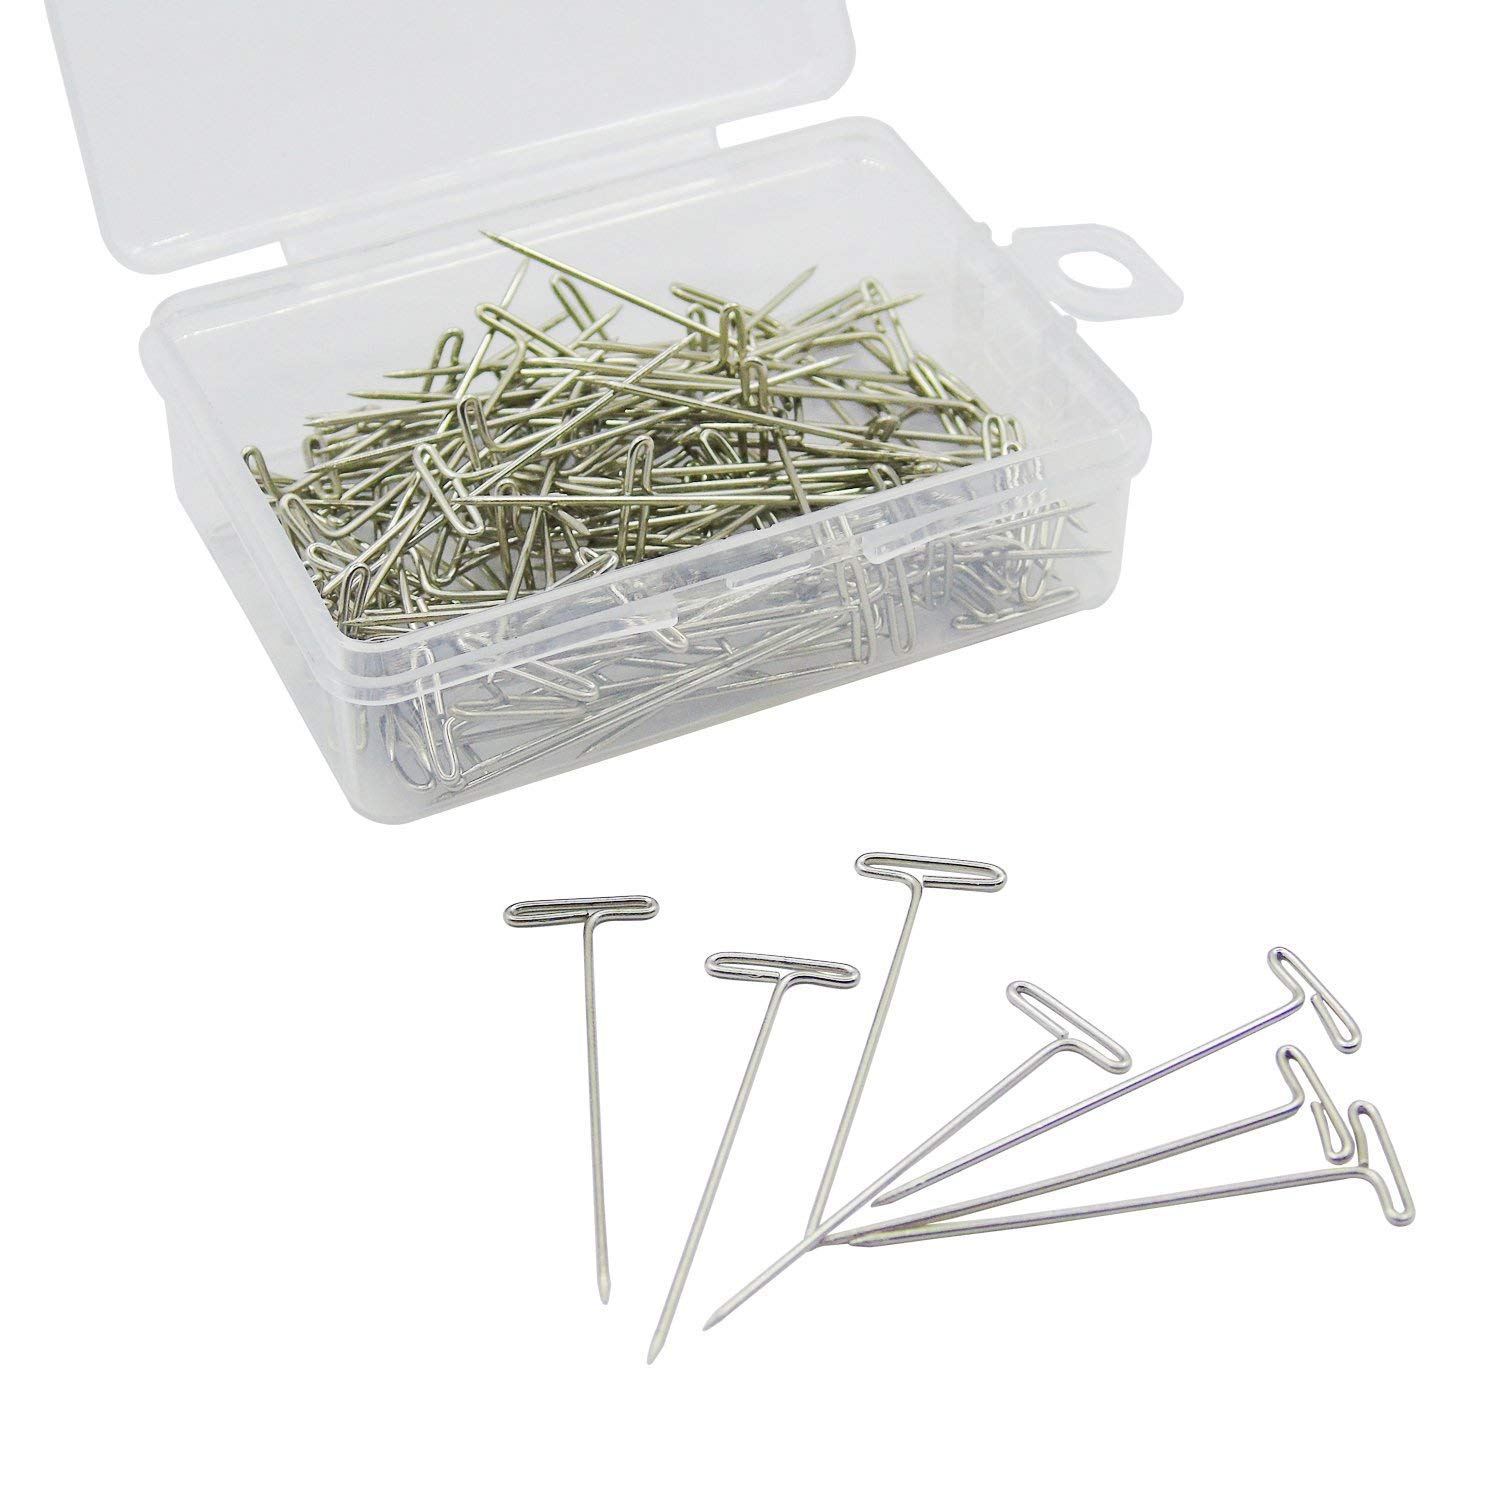 Grosun 400pcs 38mm/1.5inch Stainless Steel T-Pins